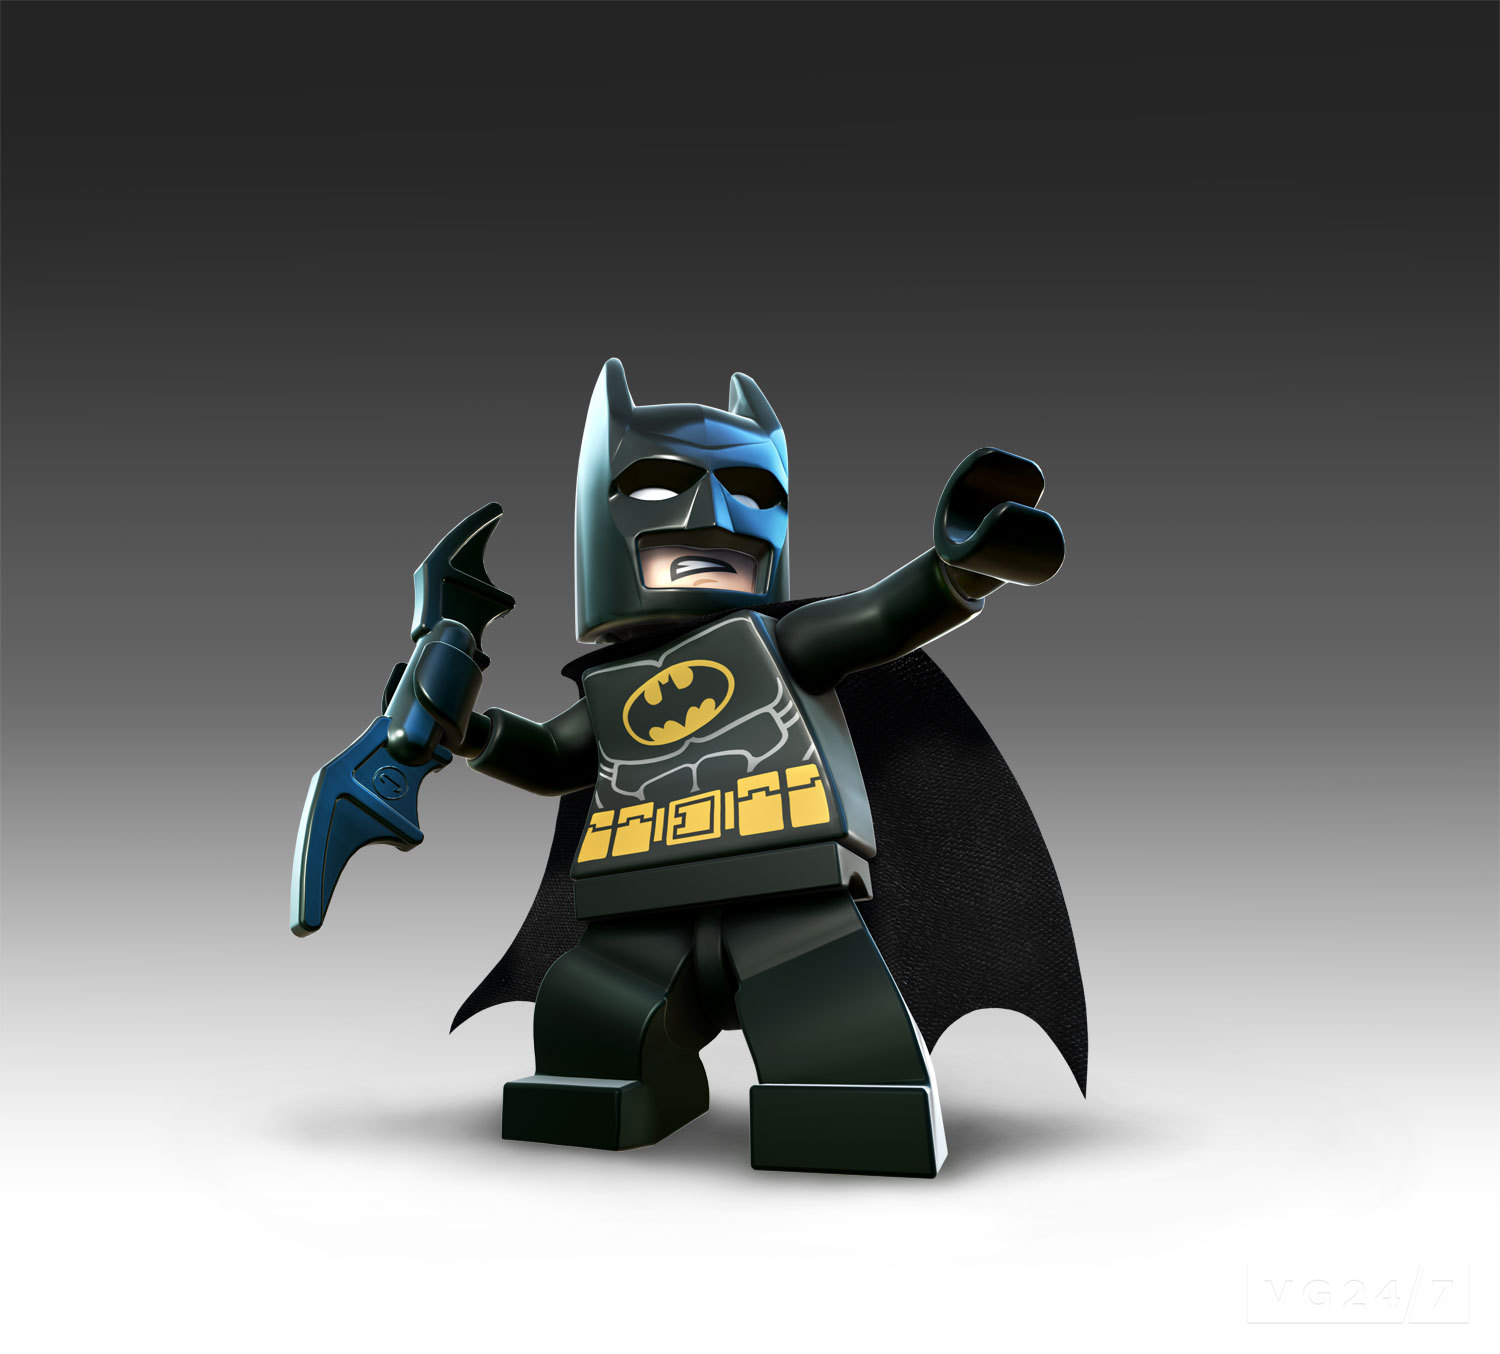 Lego Batman 2 Dc Super Heroes Gets First Trailer Vg247